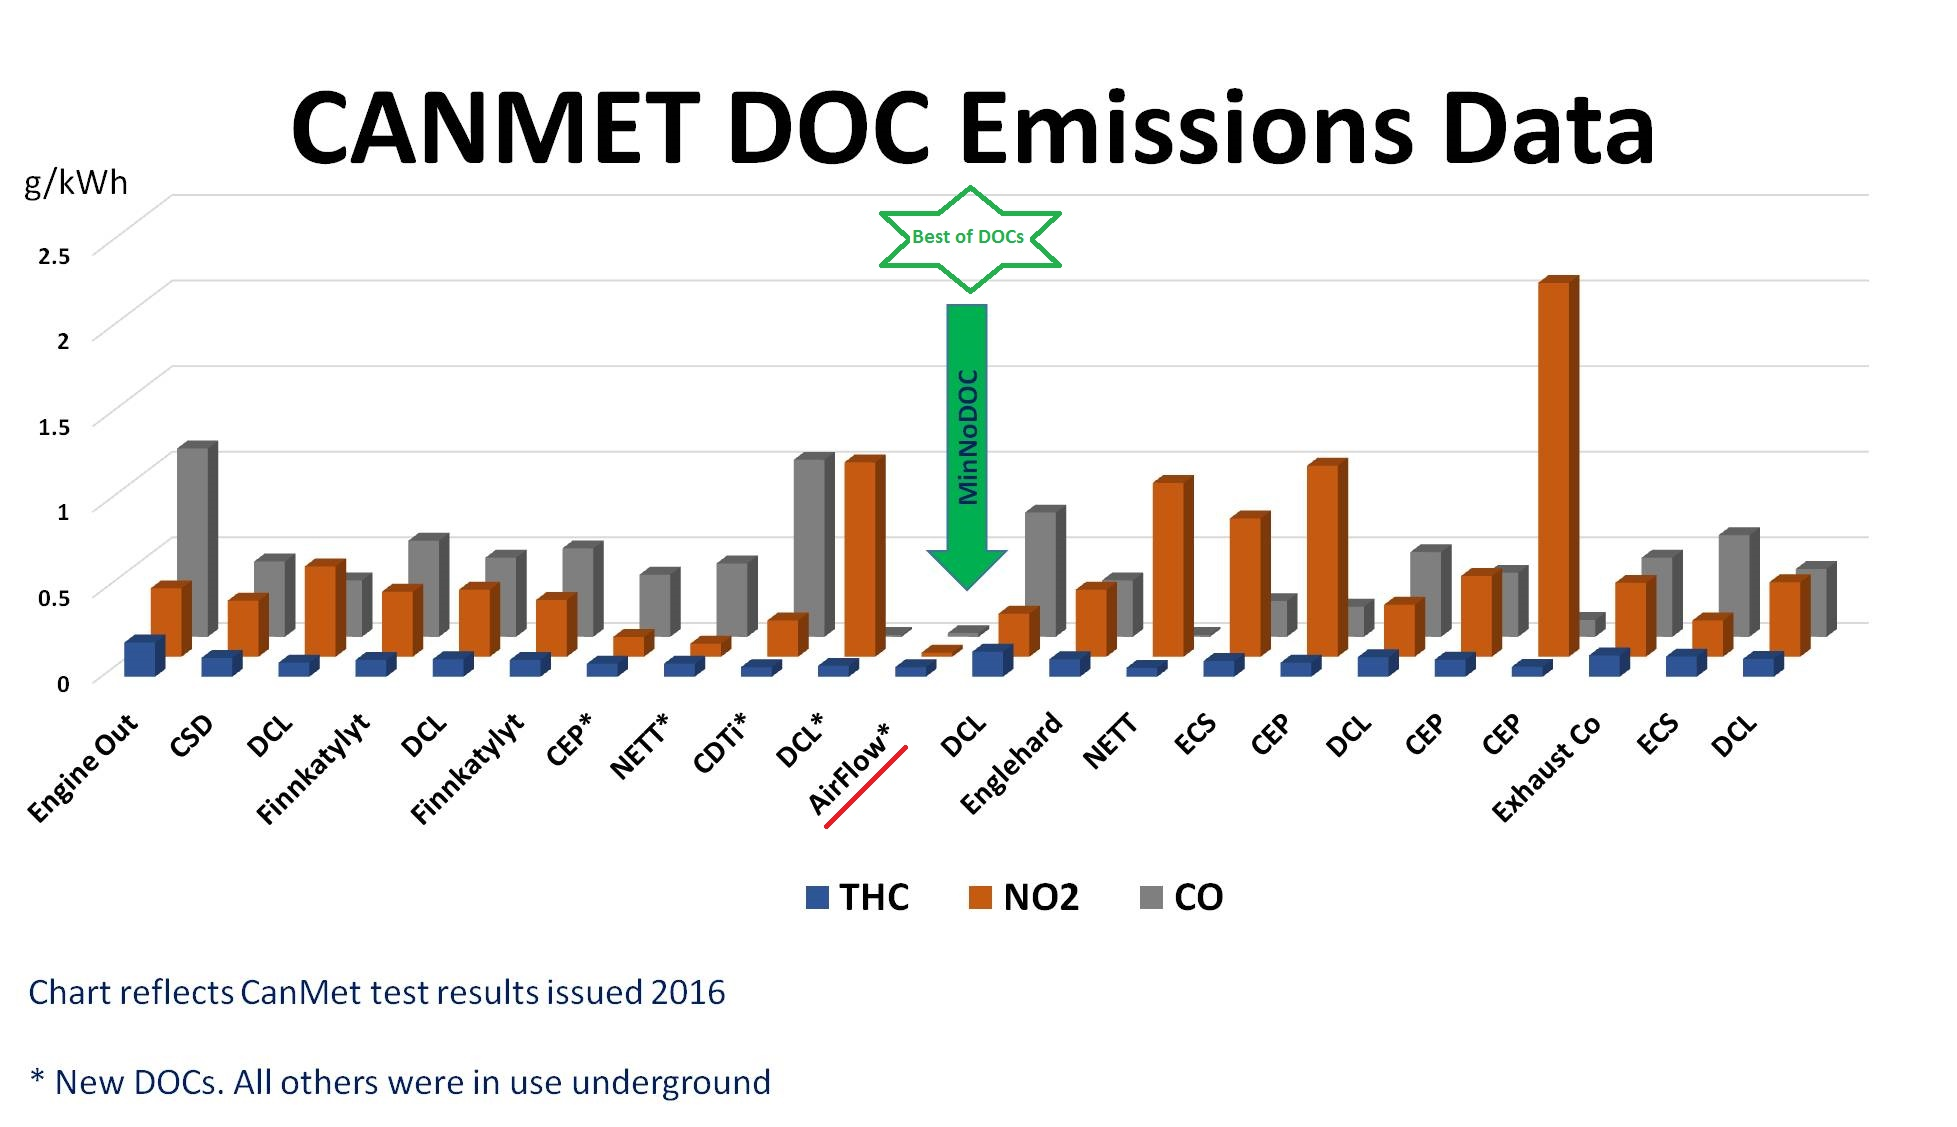 Airflow Catalyst superior diesel oxidation catalyst (DOC) products from CANMET 2016 Emissions Data Report